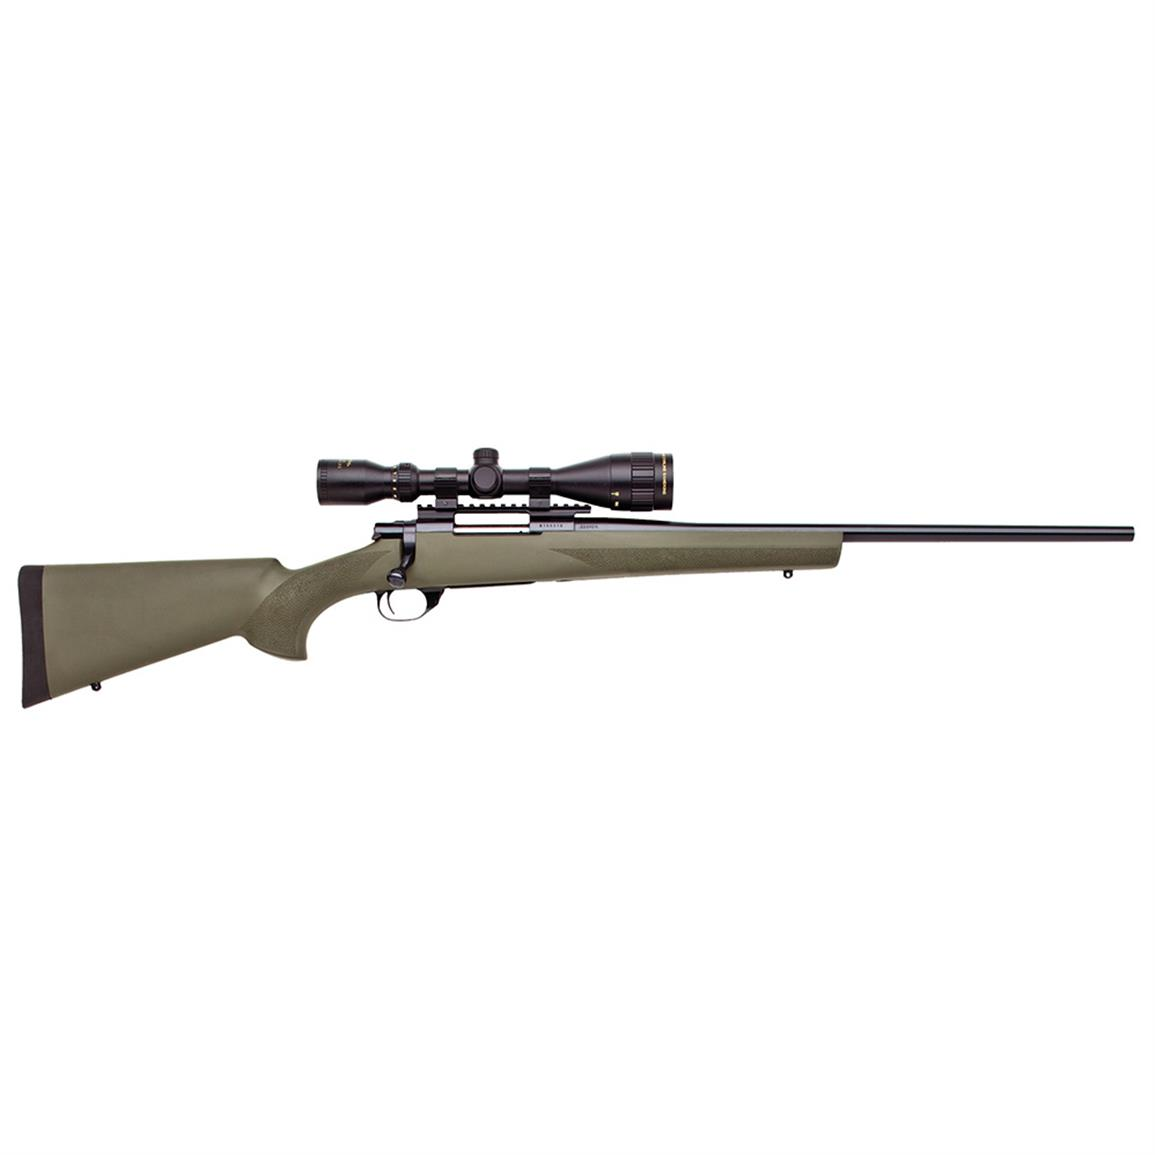 LSI Howa Hogue Gameking, Bolt Action, .25-06 Remington, Nikko Stirling 4-16x44mm Scope, 5+1 Rounds